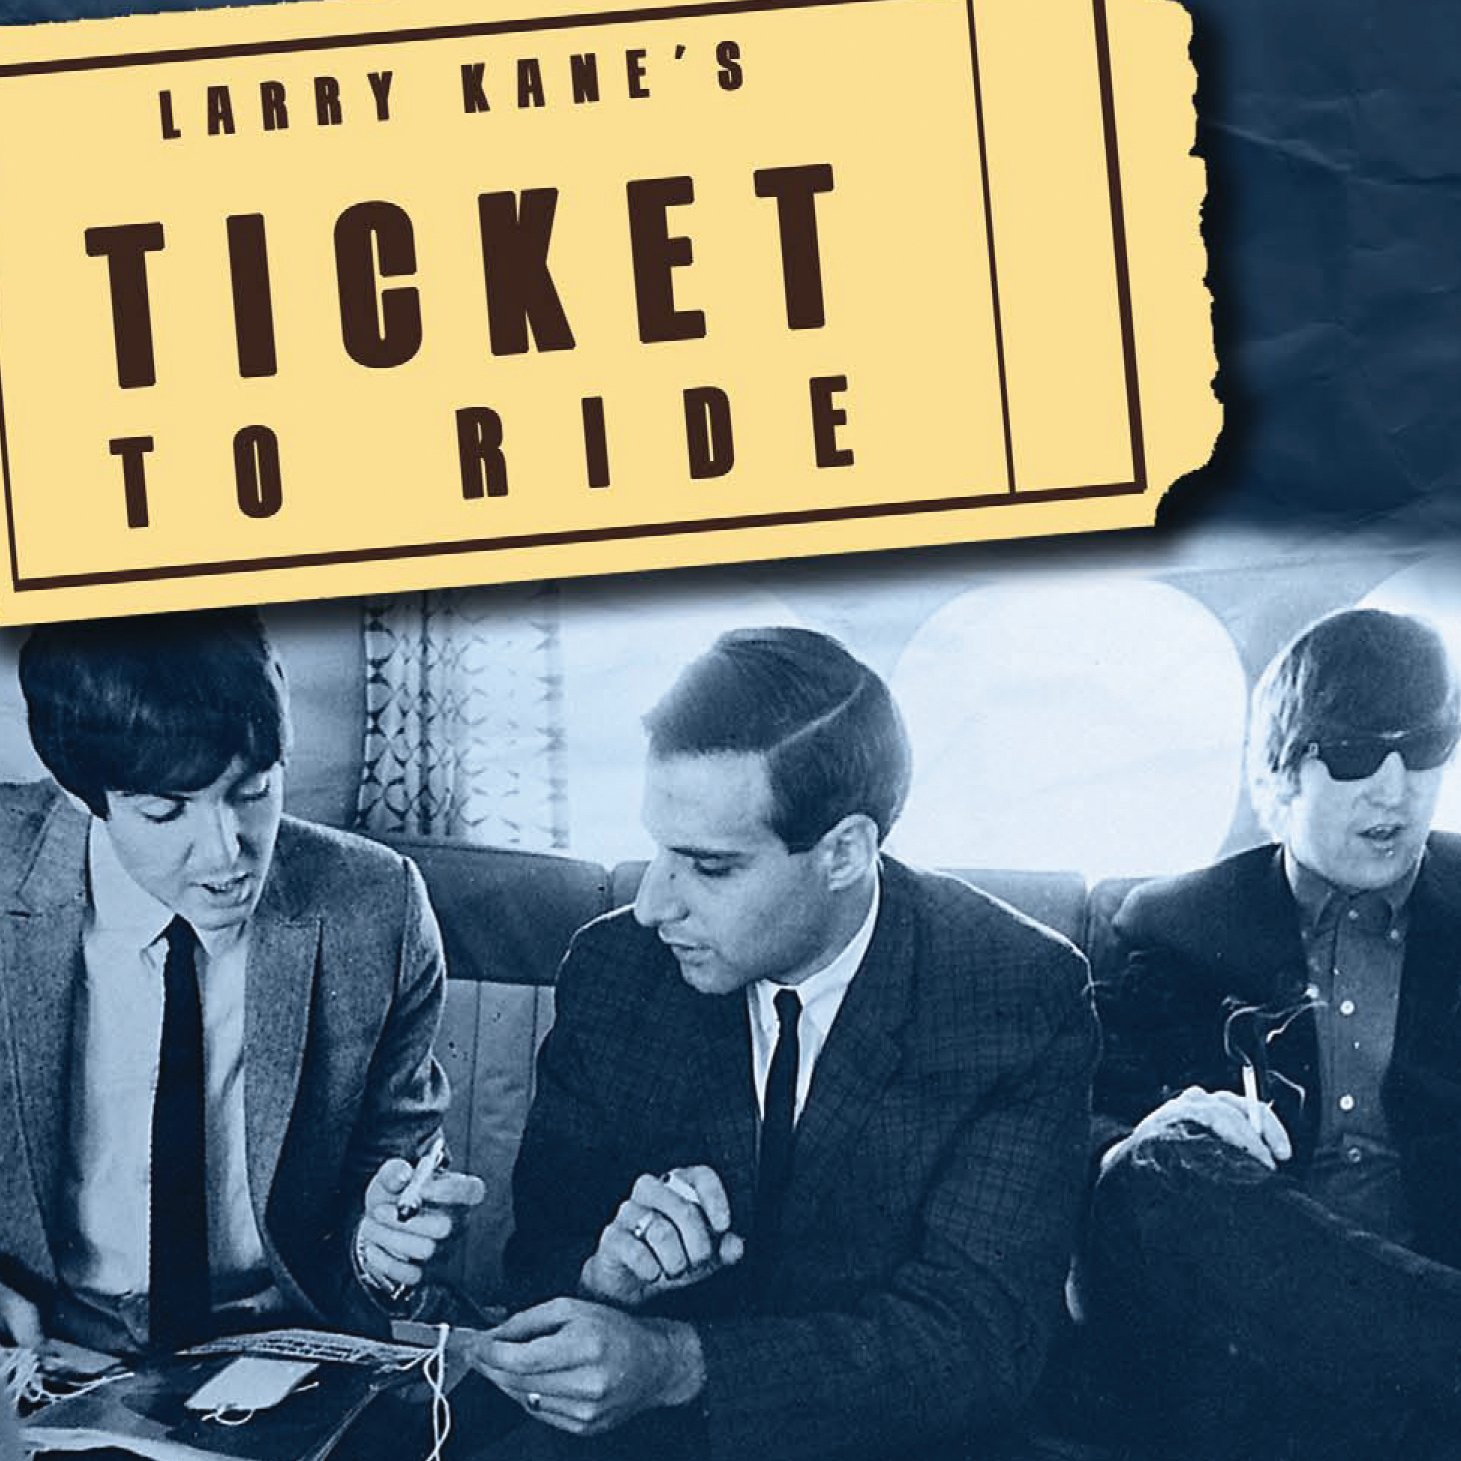 Vinilo : The Beatles - Larry Kane's Ticket to Ride (LP Vinyl)